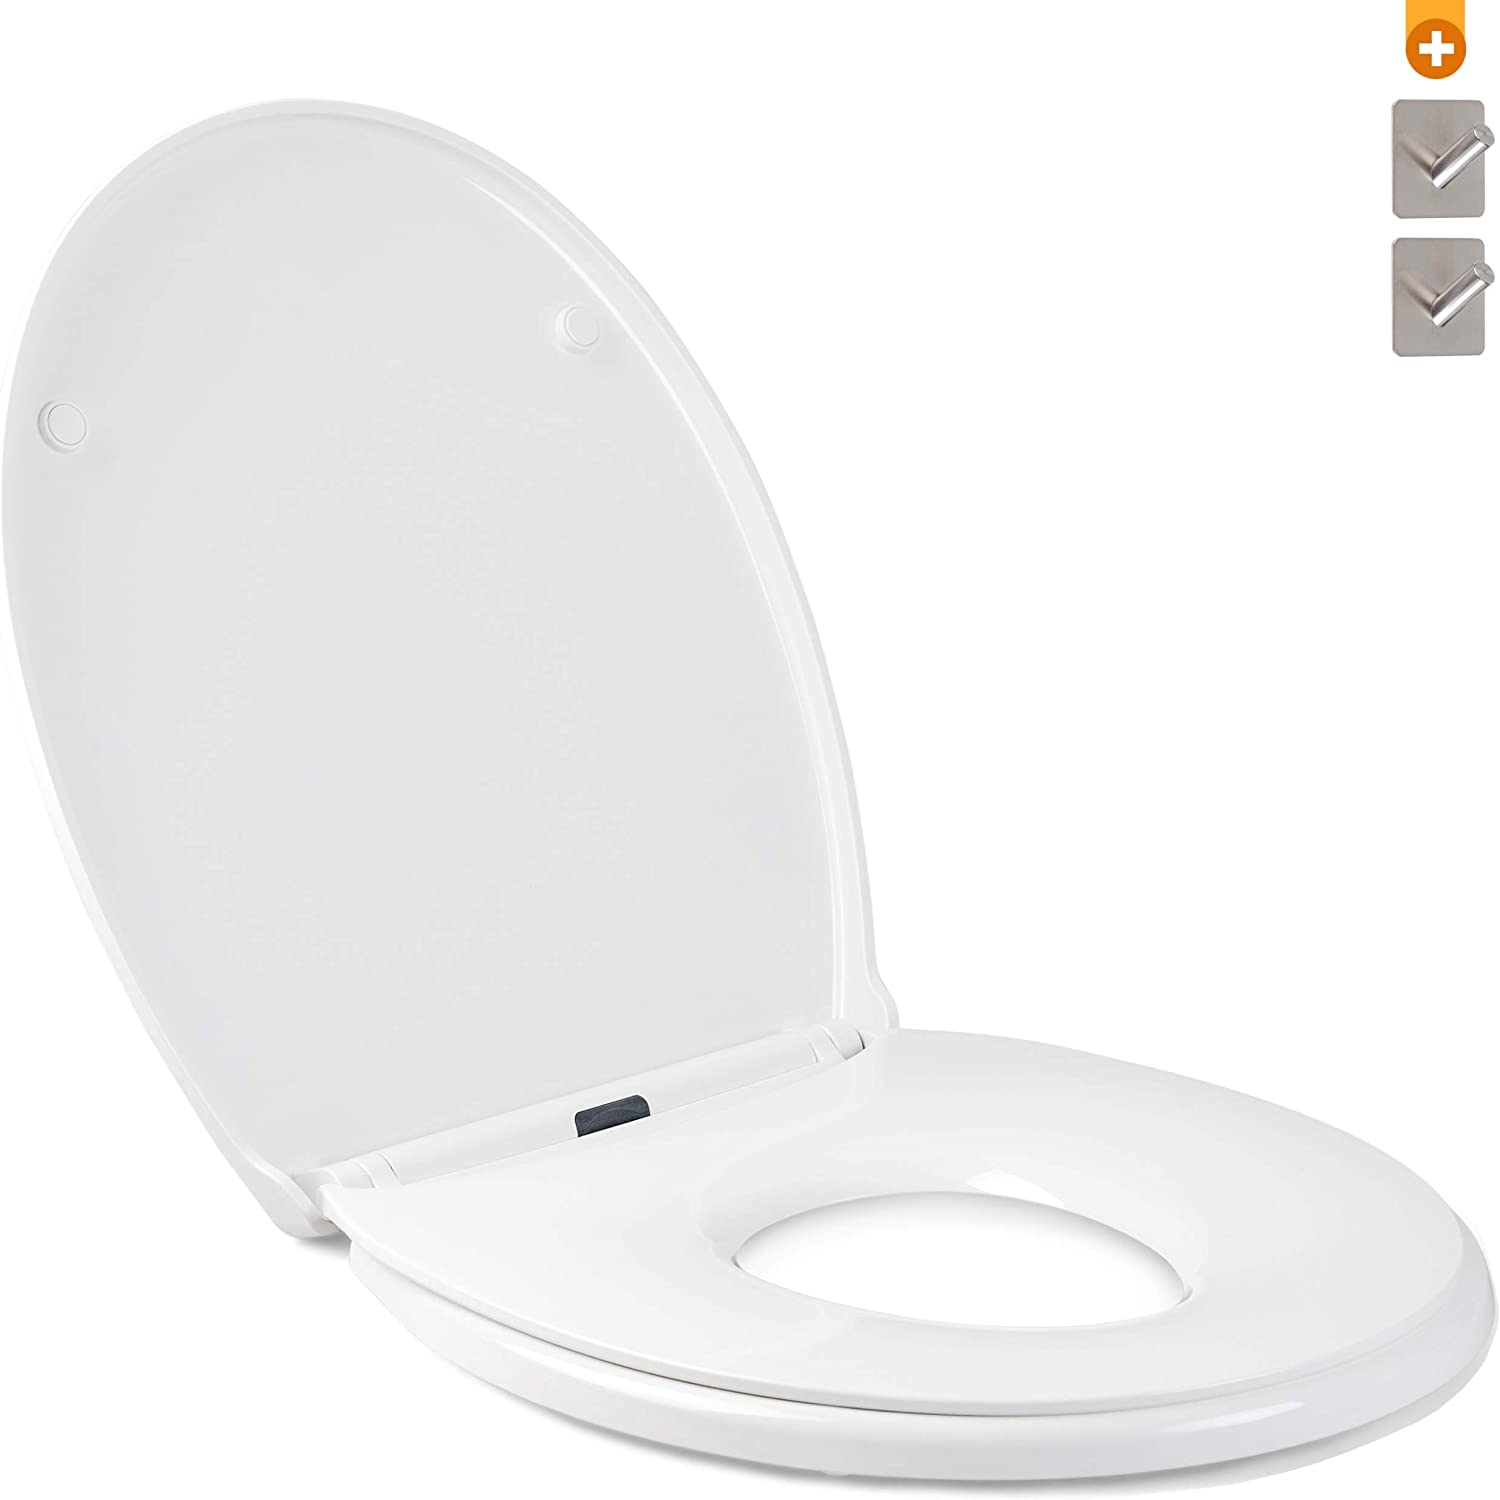 Free: 2X Stainless Steel Adhesive Hooks Thermoset Toilet seat//lid with Soft Close Toilet lid Oval Shape